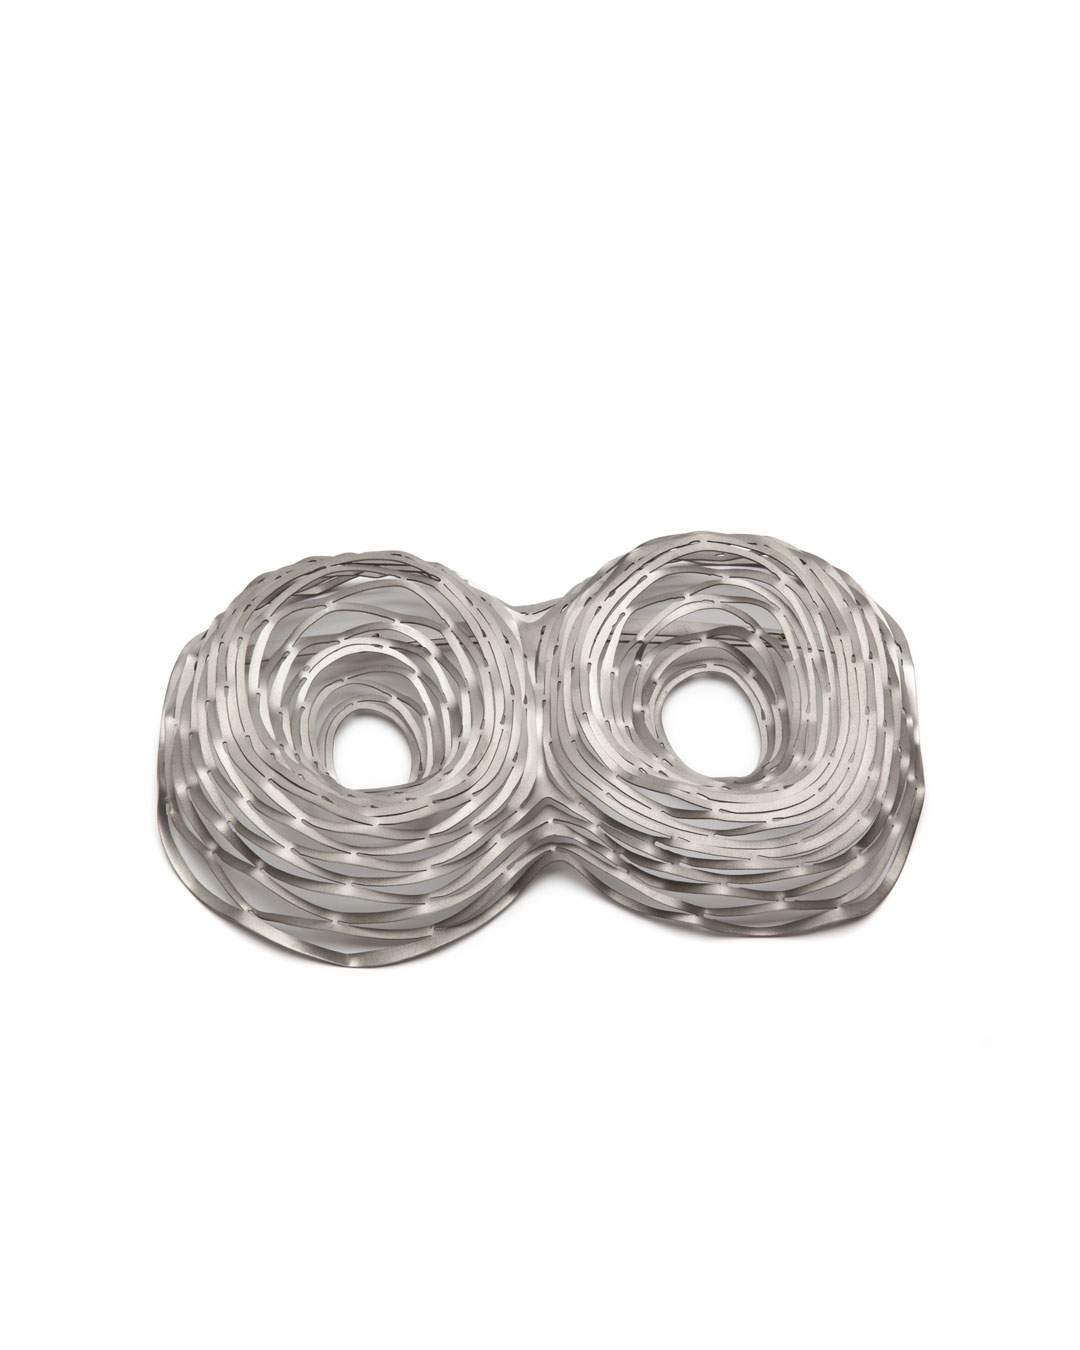 Antje Bräuer, untitled, 2010, brooch; titanium, gold, stainless steel, 125 x 211 x 44 mm, €1115